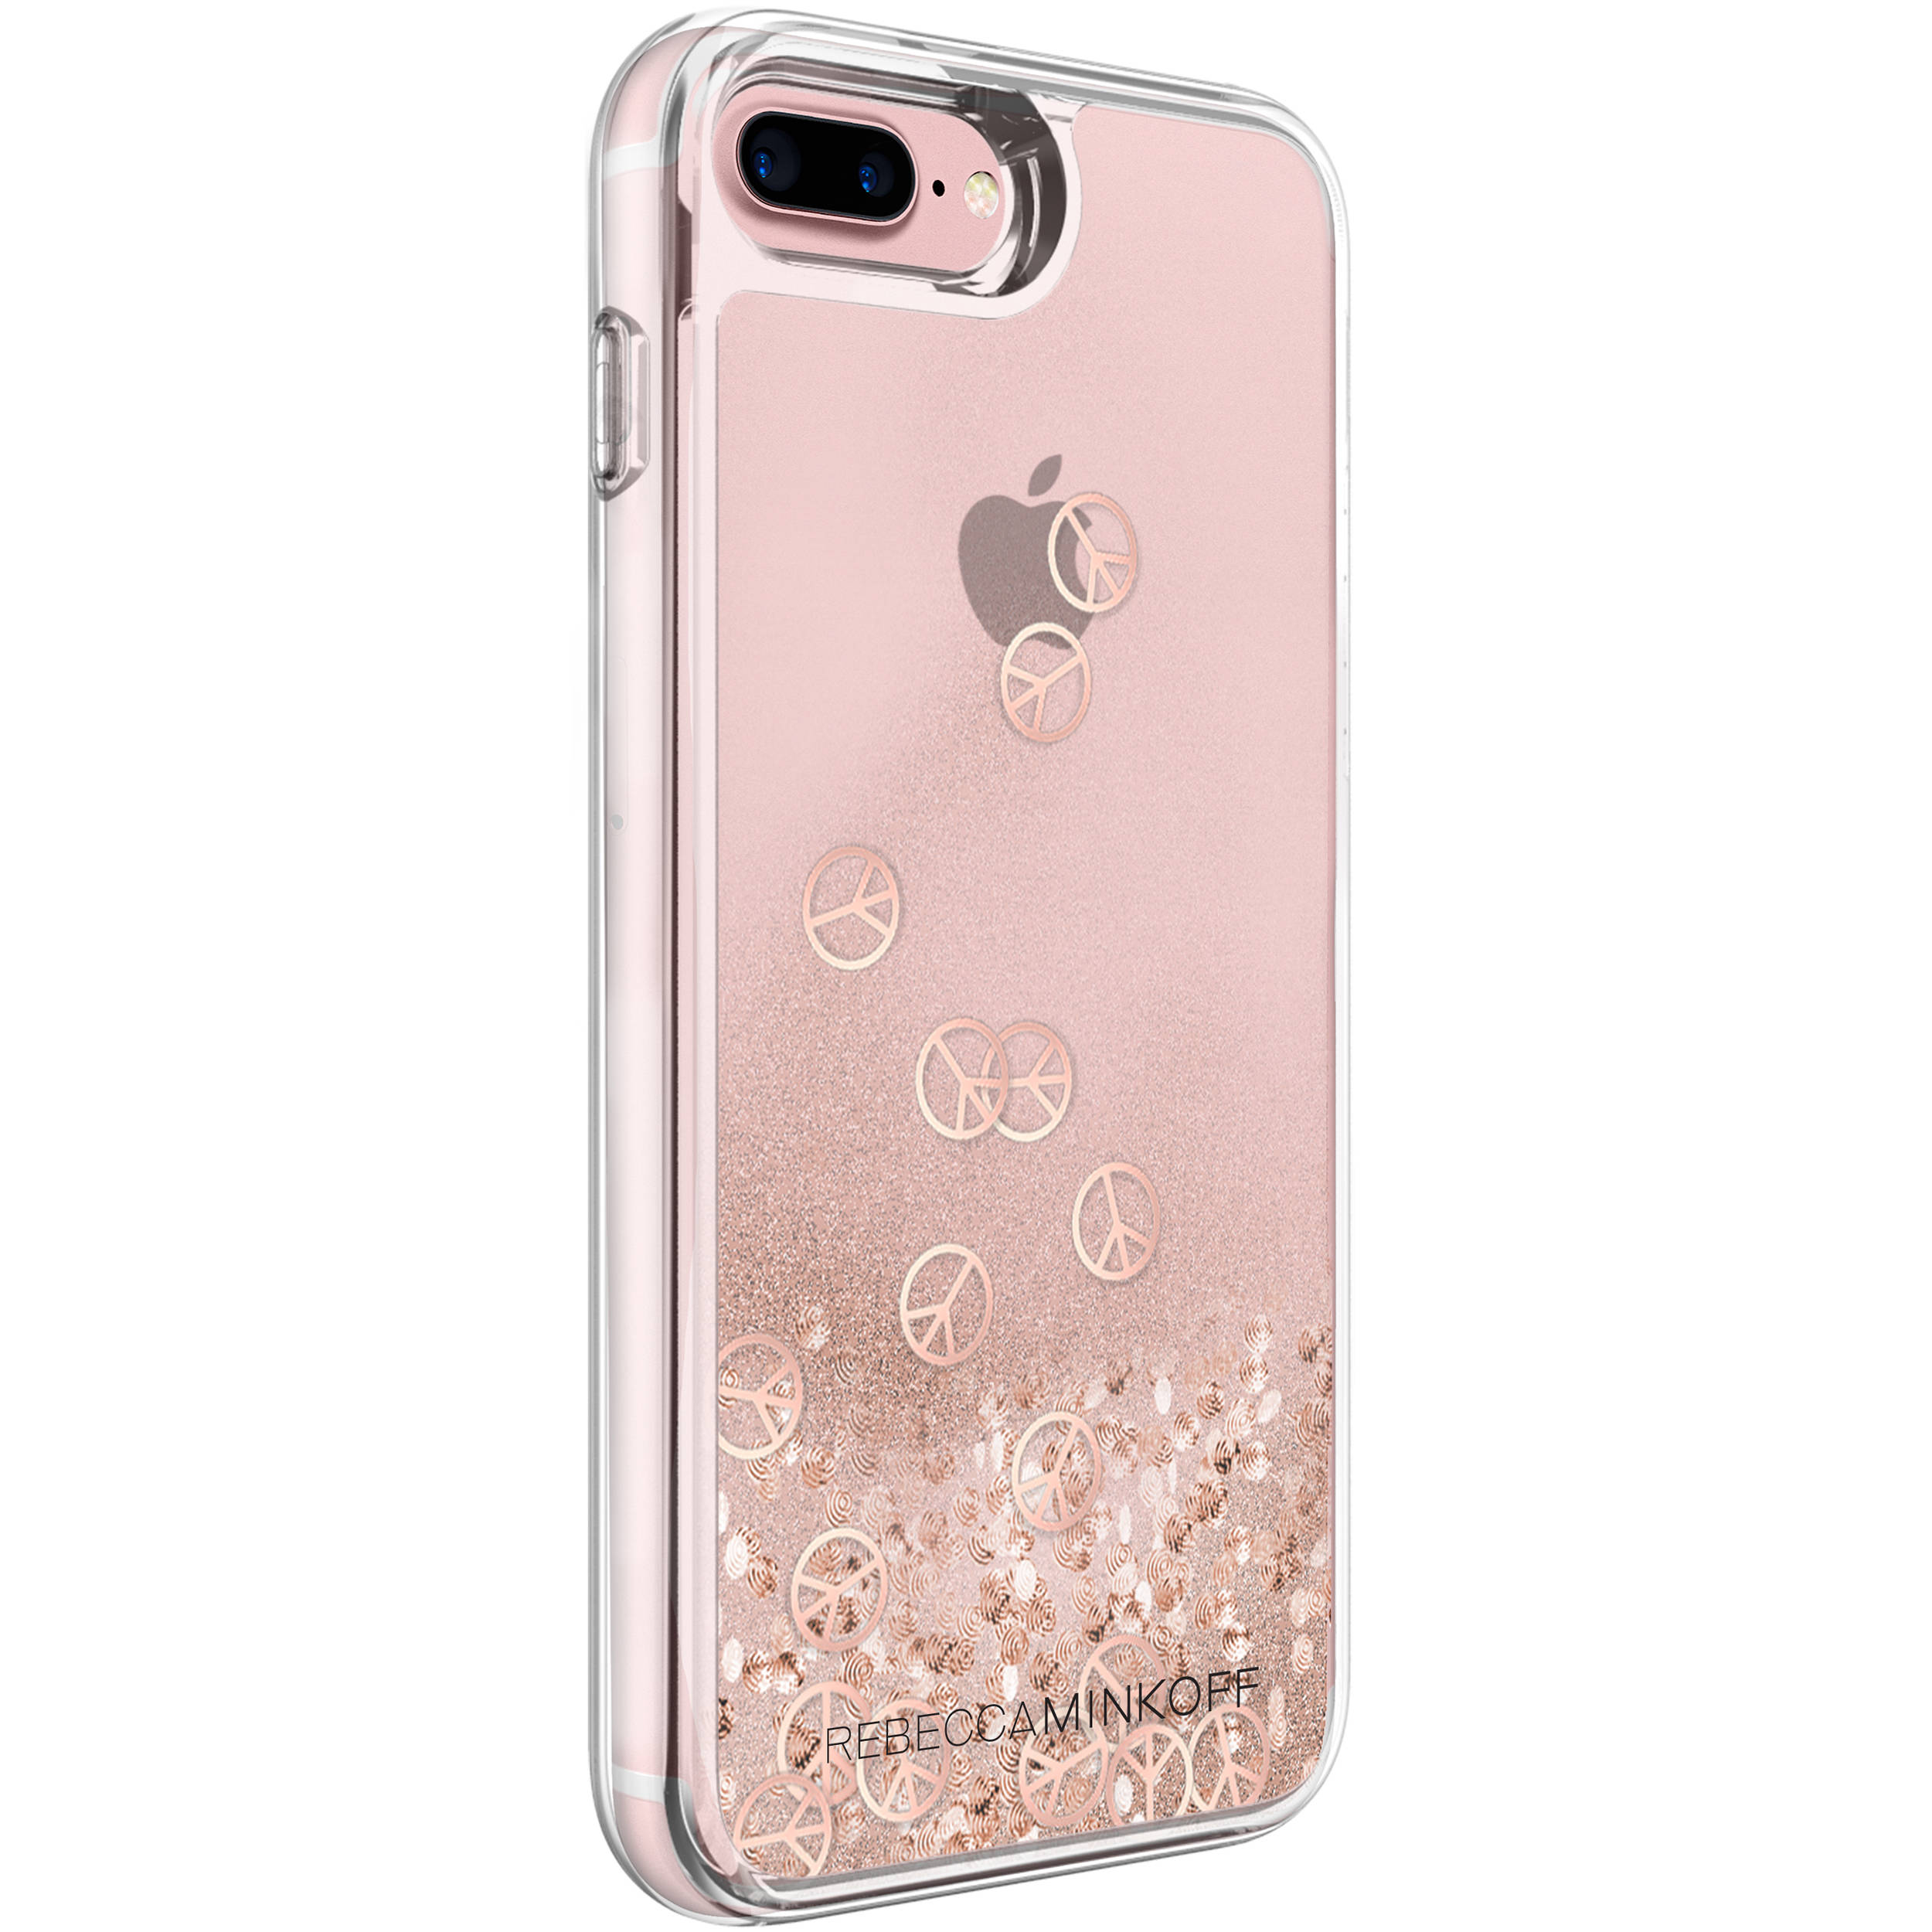 new product 576cf 65466 Incipio Rebecca Minkoff Glitterfall Case for iPhone 7 Plus (Peace Sign Rose  Gold)